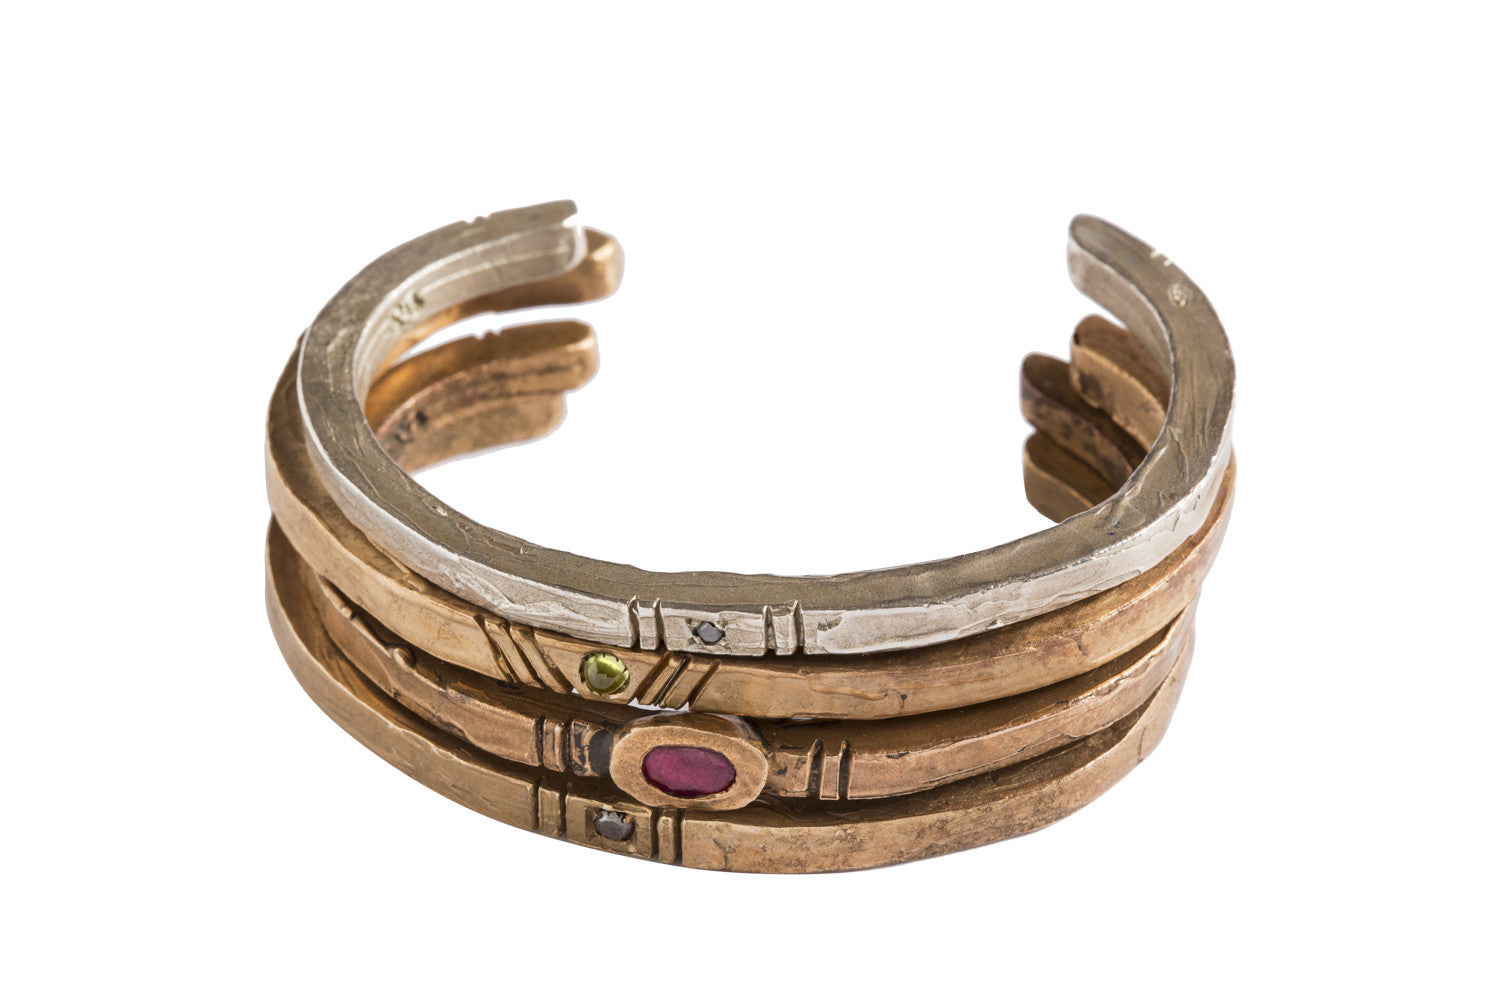 Minimalist antique bangles in bronze and silver